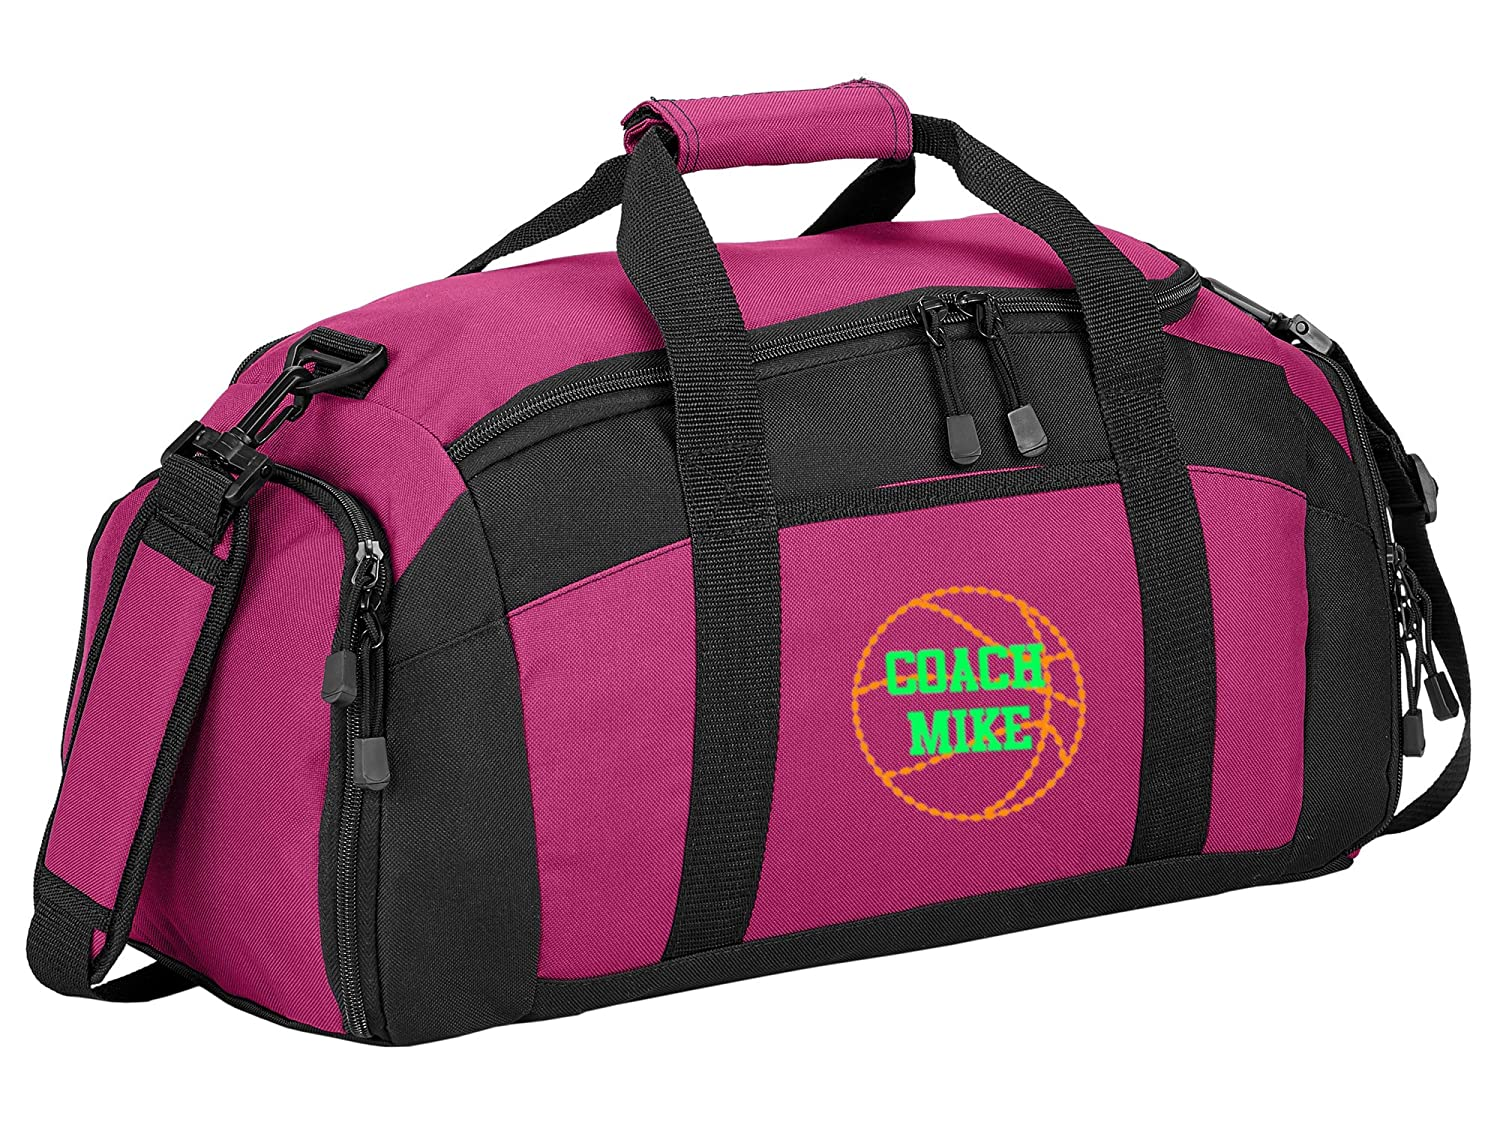 Personalized Basketball Gym Duffel Bag with Custom Text Sports Bag with Customizable Embroidered Monogram Design Tropical Pink